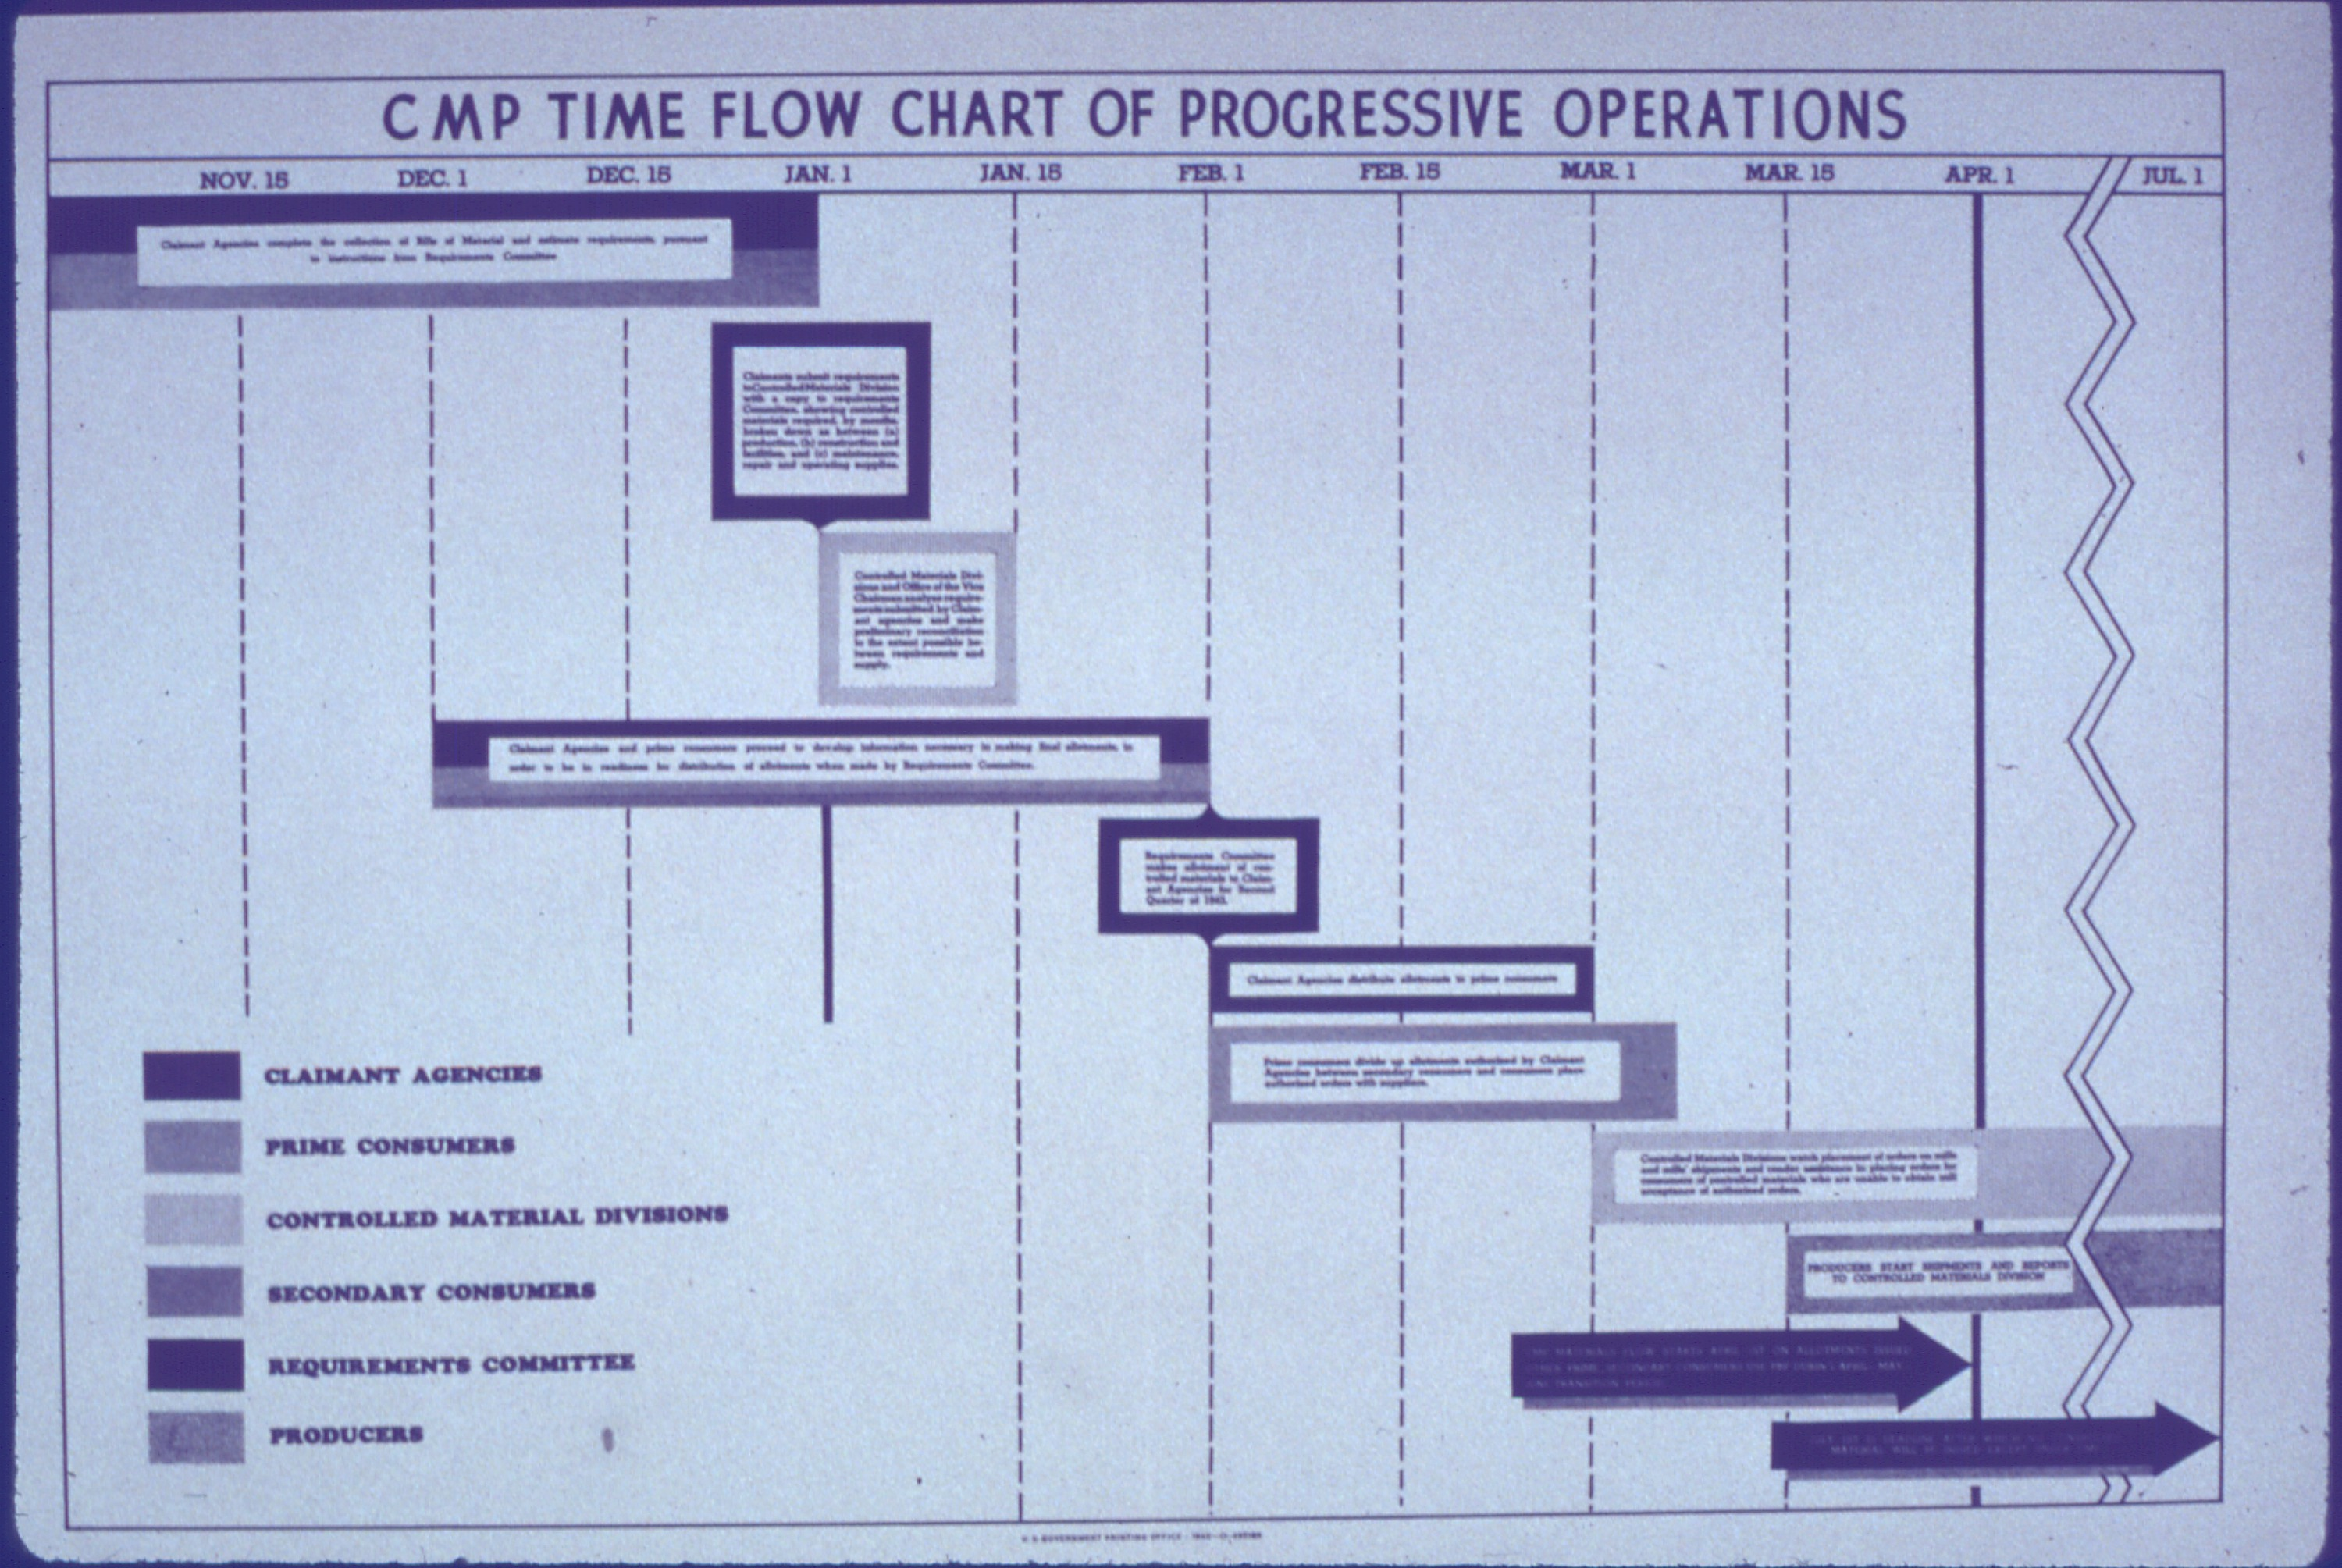 Word 2010 Flow Chart: CMP Time Flow Chart - NARA - 514066.jpg - Wikimedia Commons,Chart